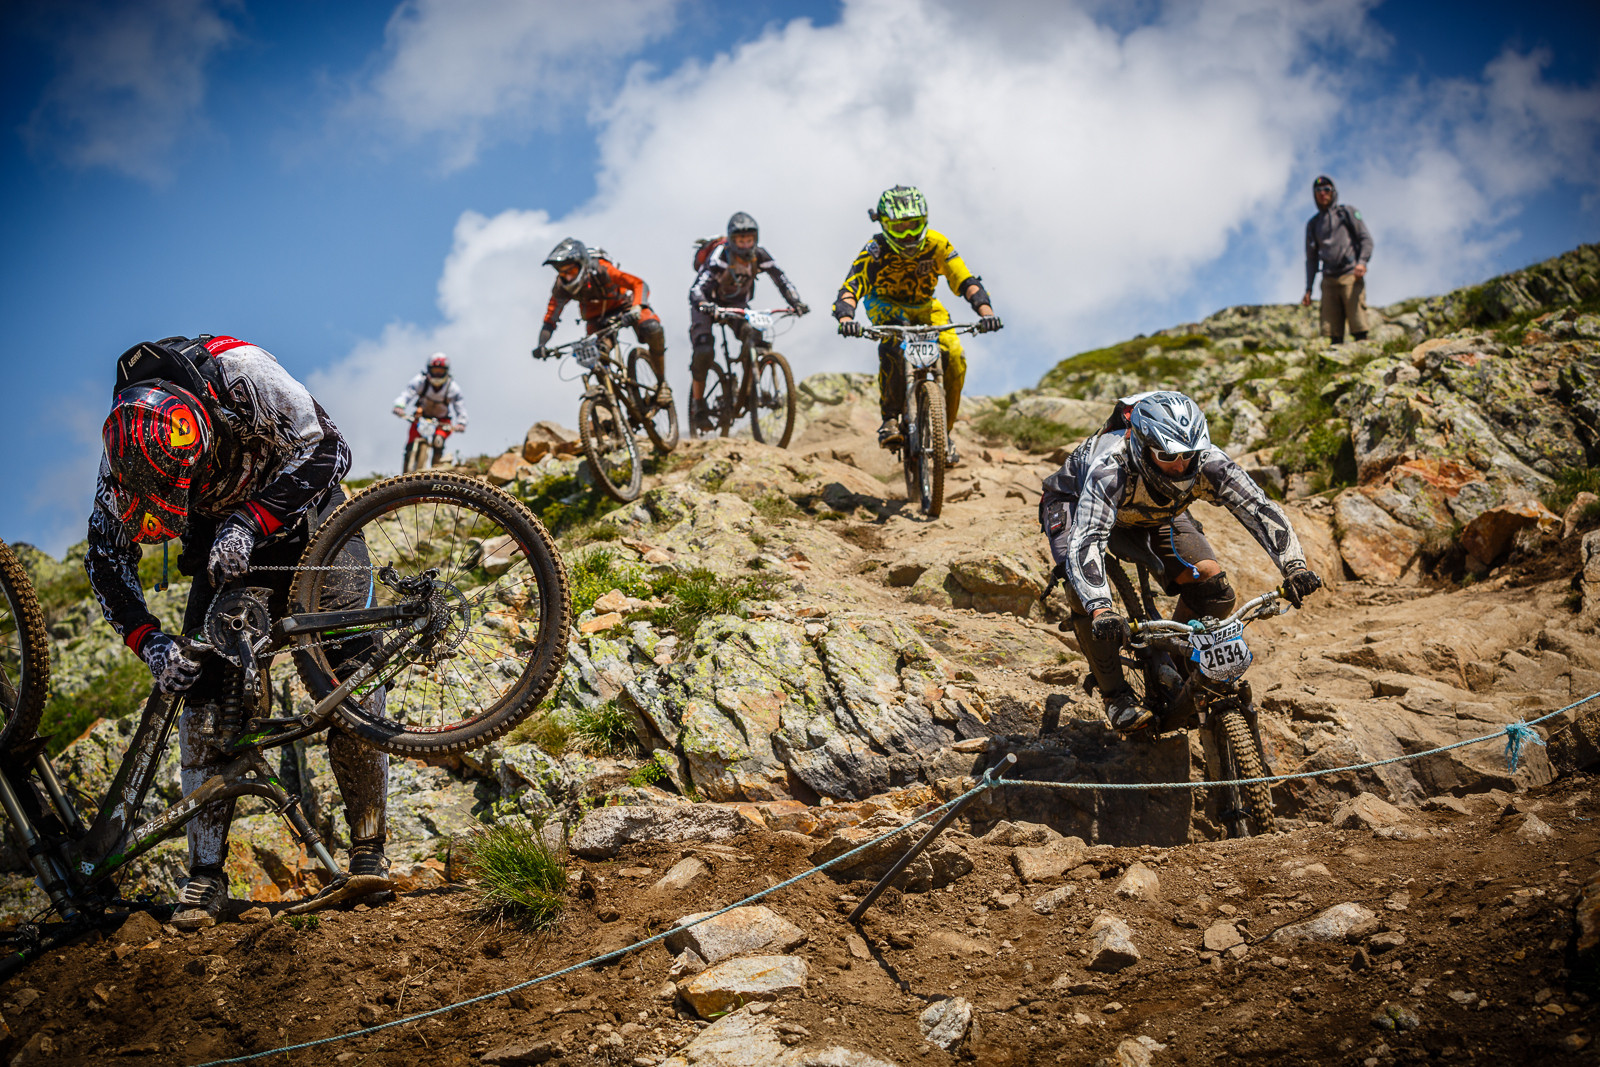 Mega Line Options at Megavalanche - 39 Megavalanche Mayhem Photos - Mountain Biking Pictures - Vital MTB